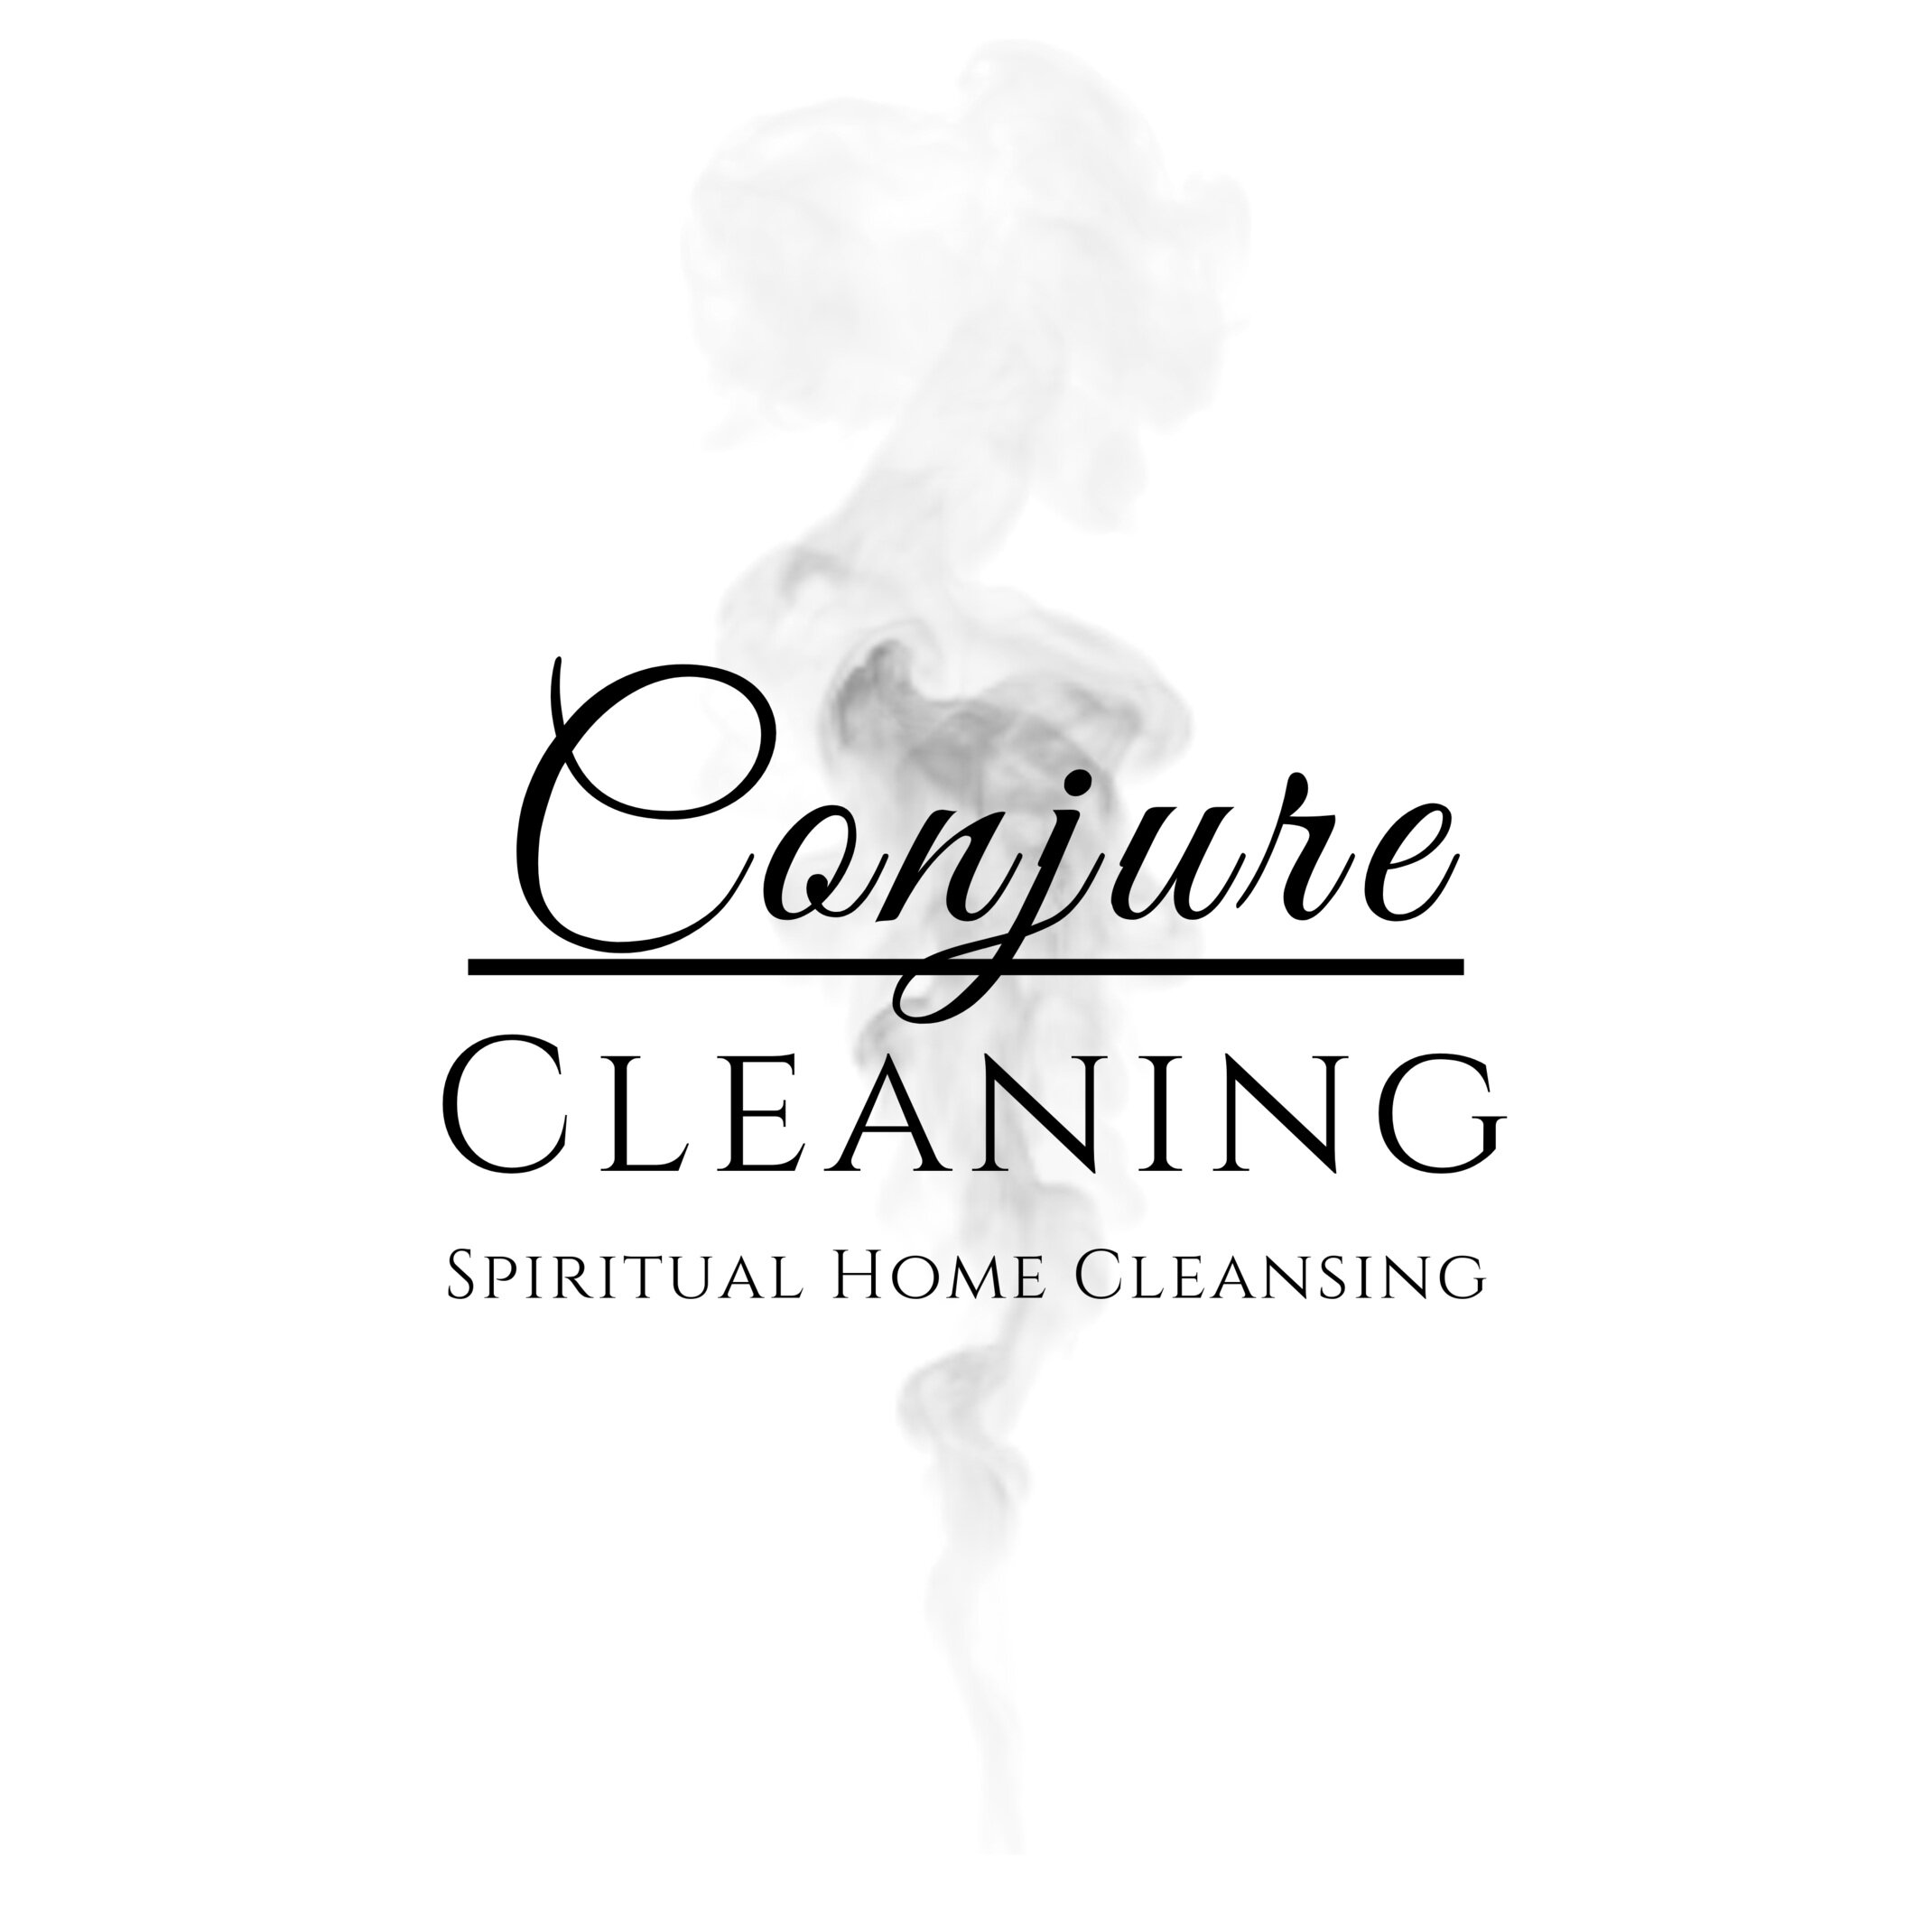 Copy+of+Copy+of+Conjure+Cleaning.jpg